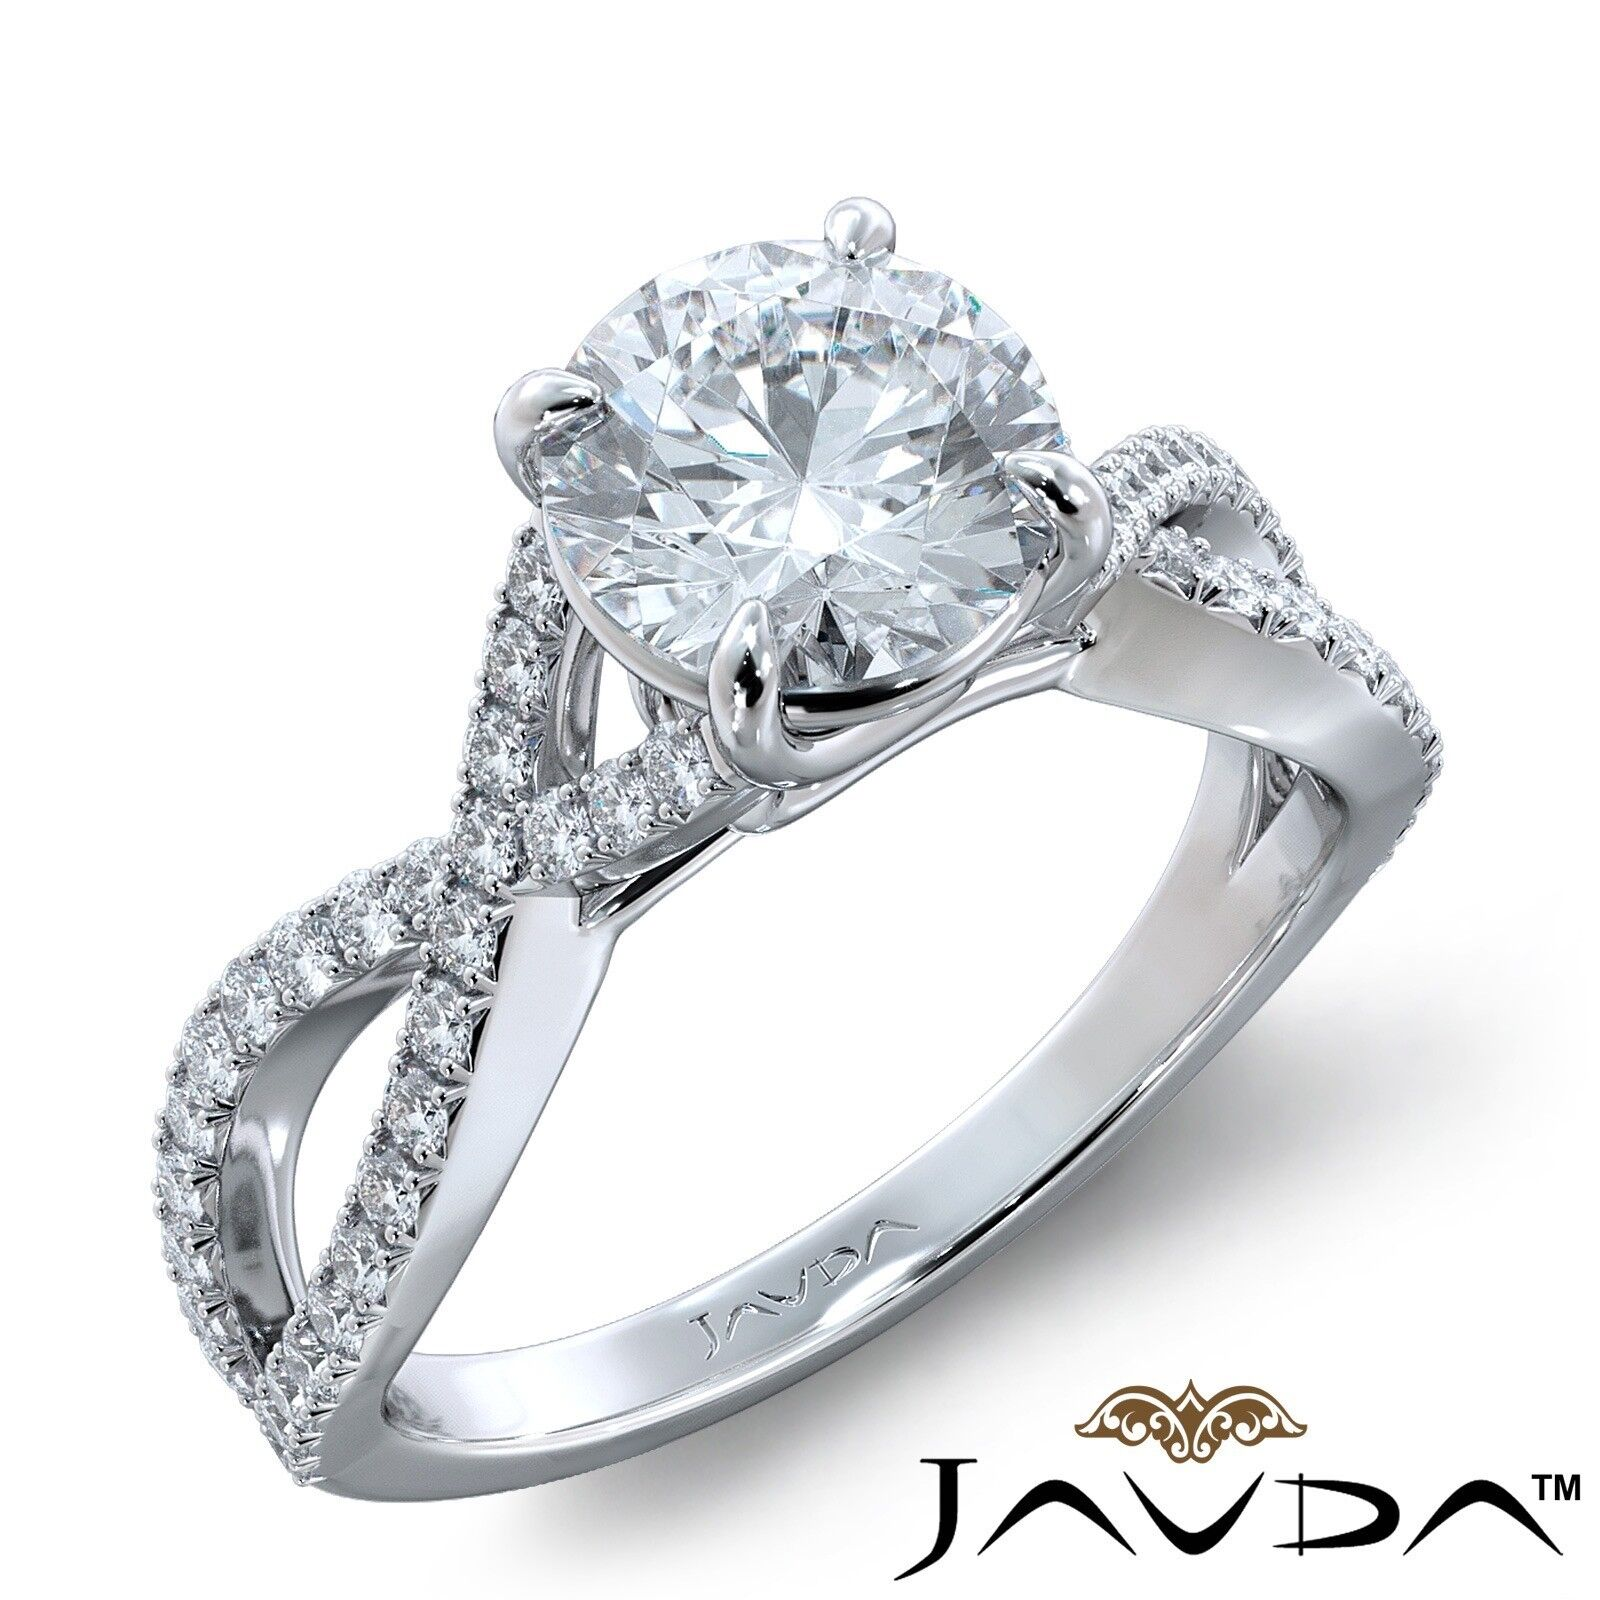 1.52ct French Pave Sidestone Round Diamond Engagement Ring GIA H-VVS1 White Gold